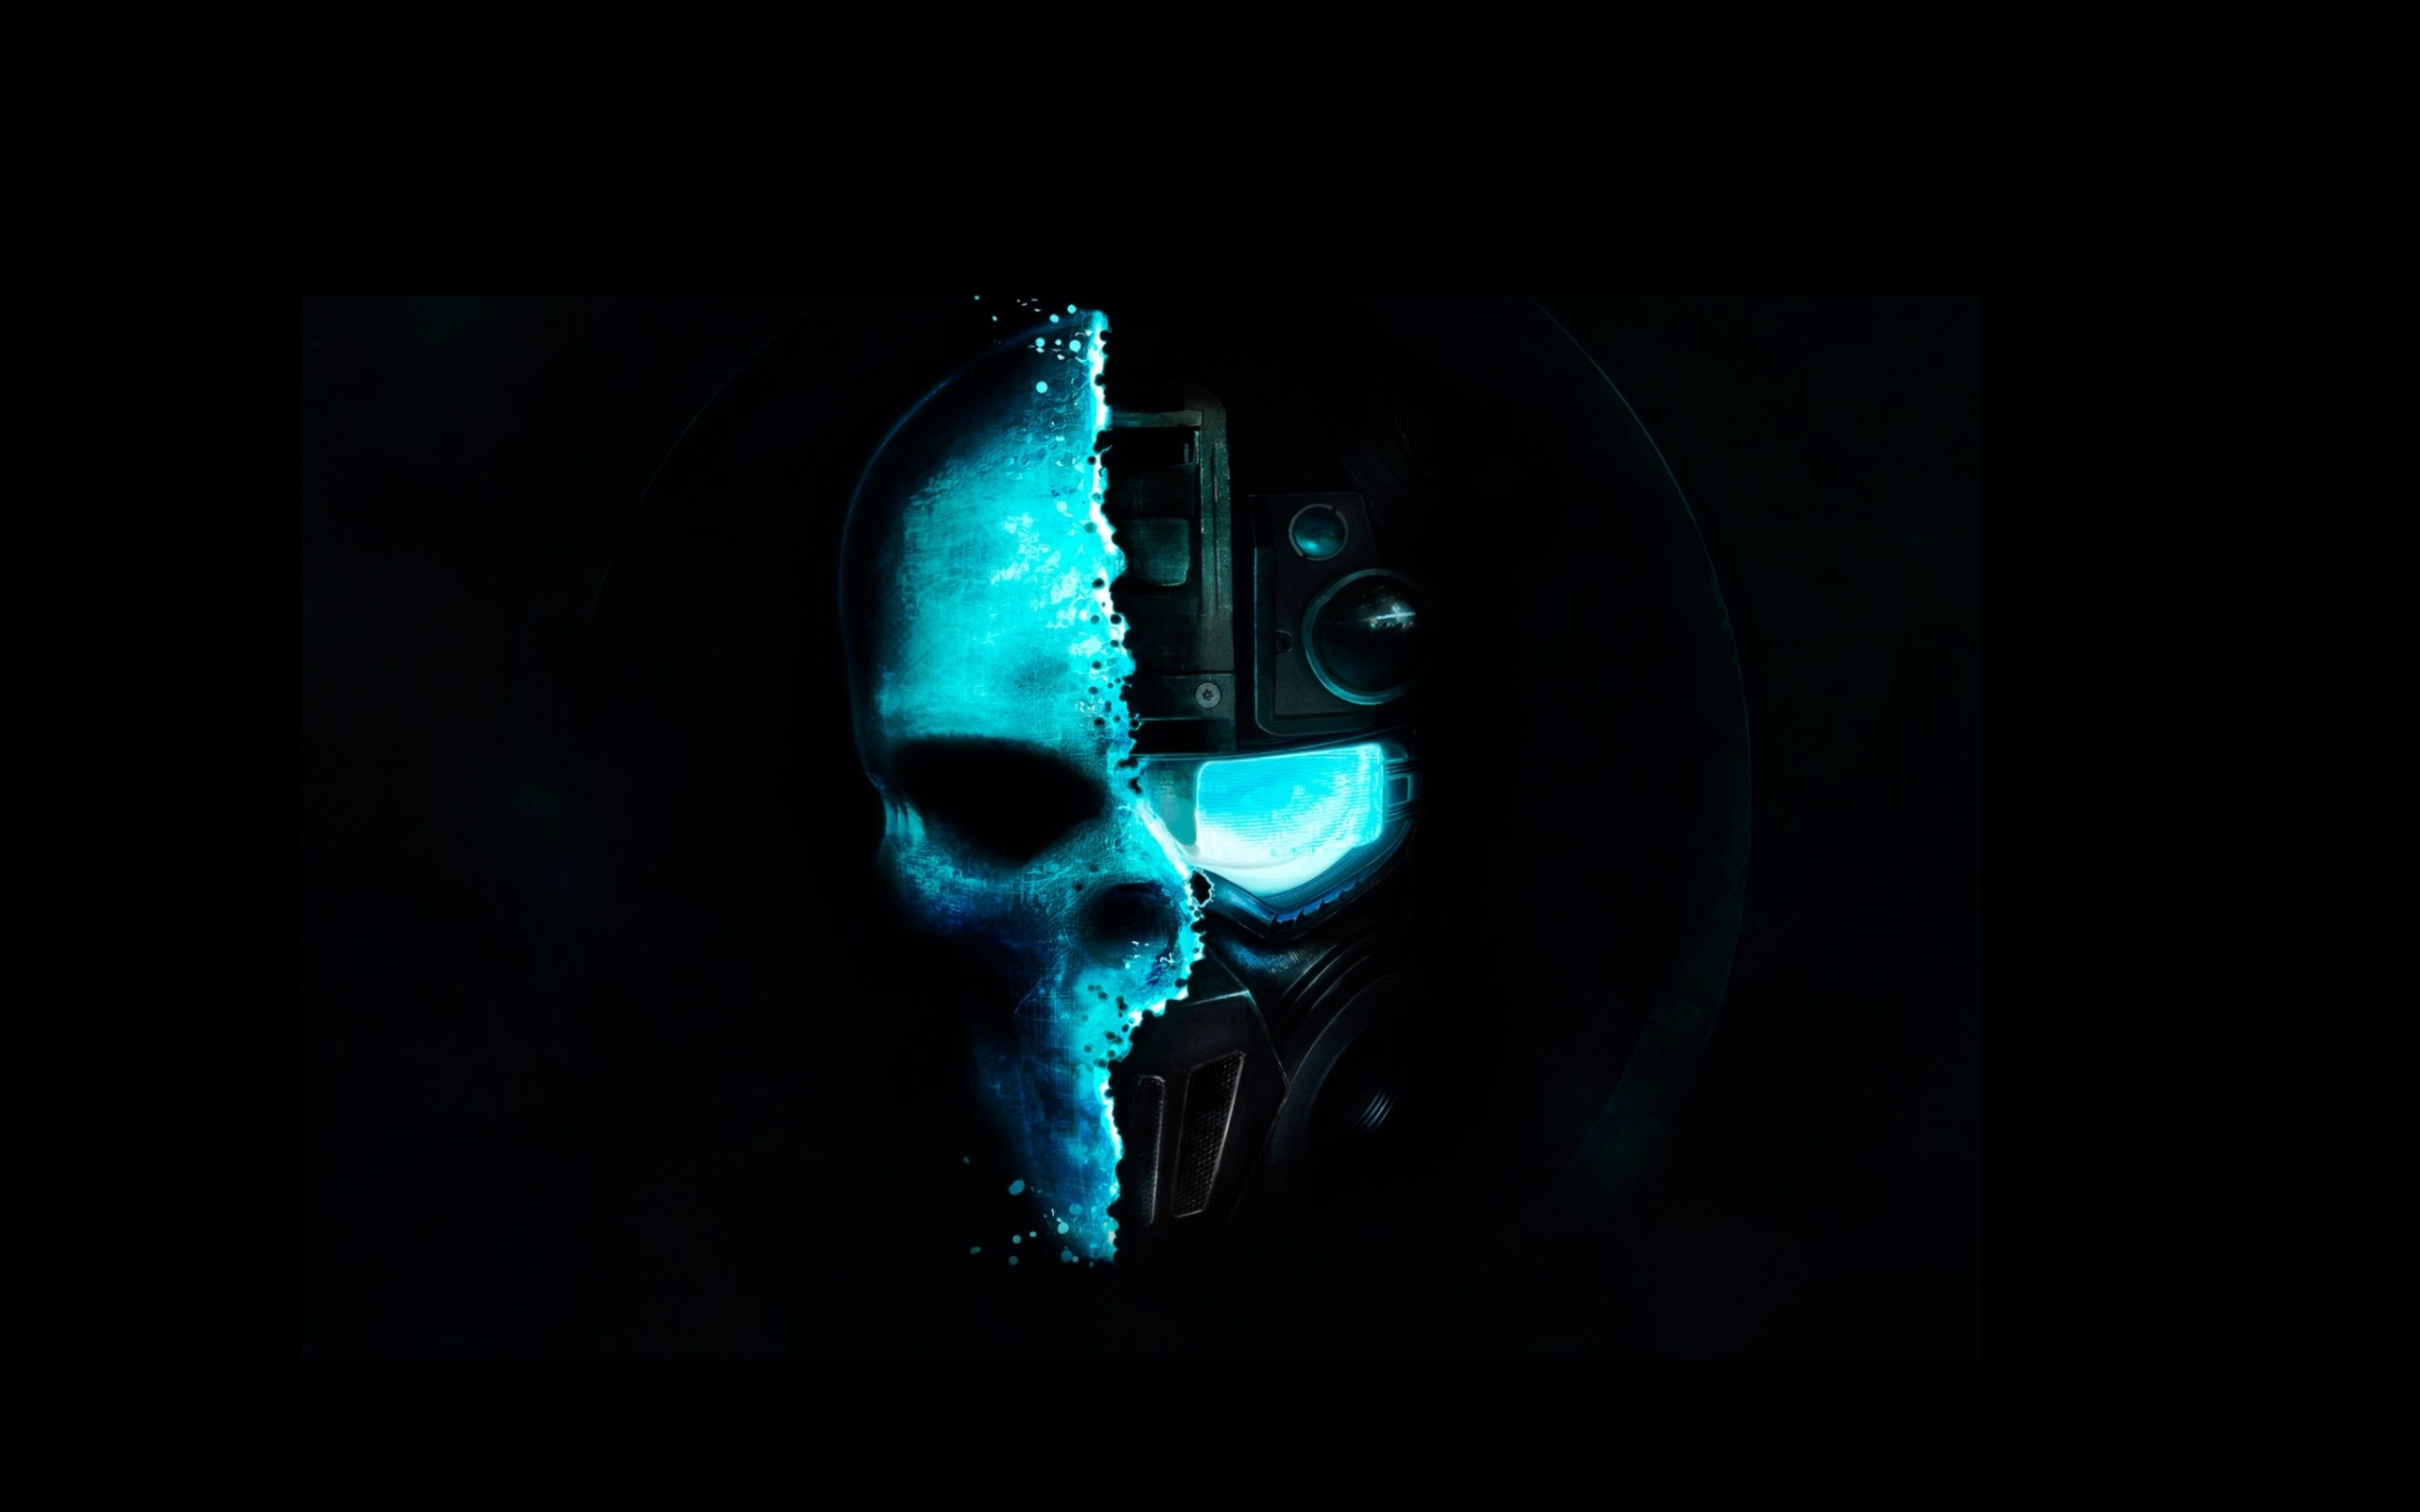 Skull Abstract HD Wallpaper 3D, Animated, HD, Wallpapers, Free, Download,